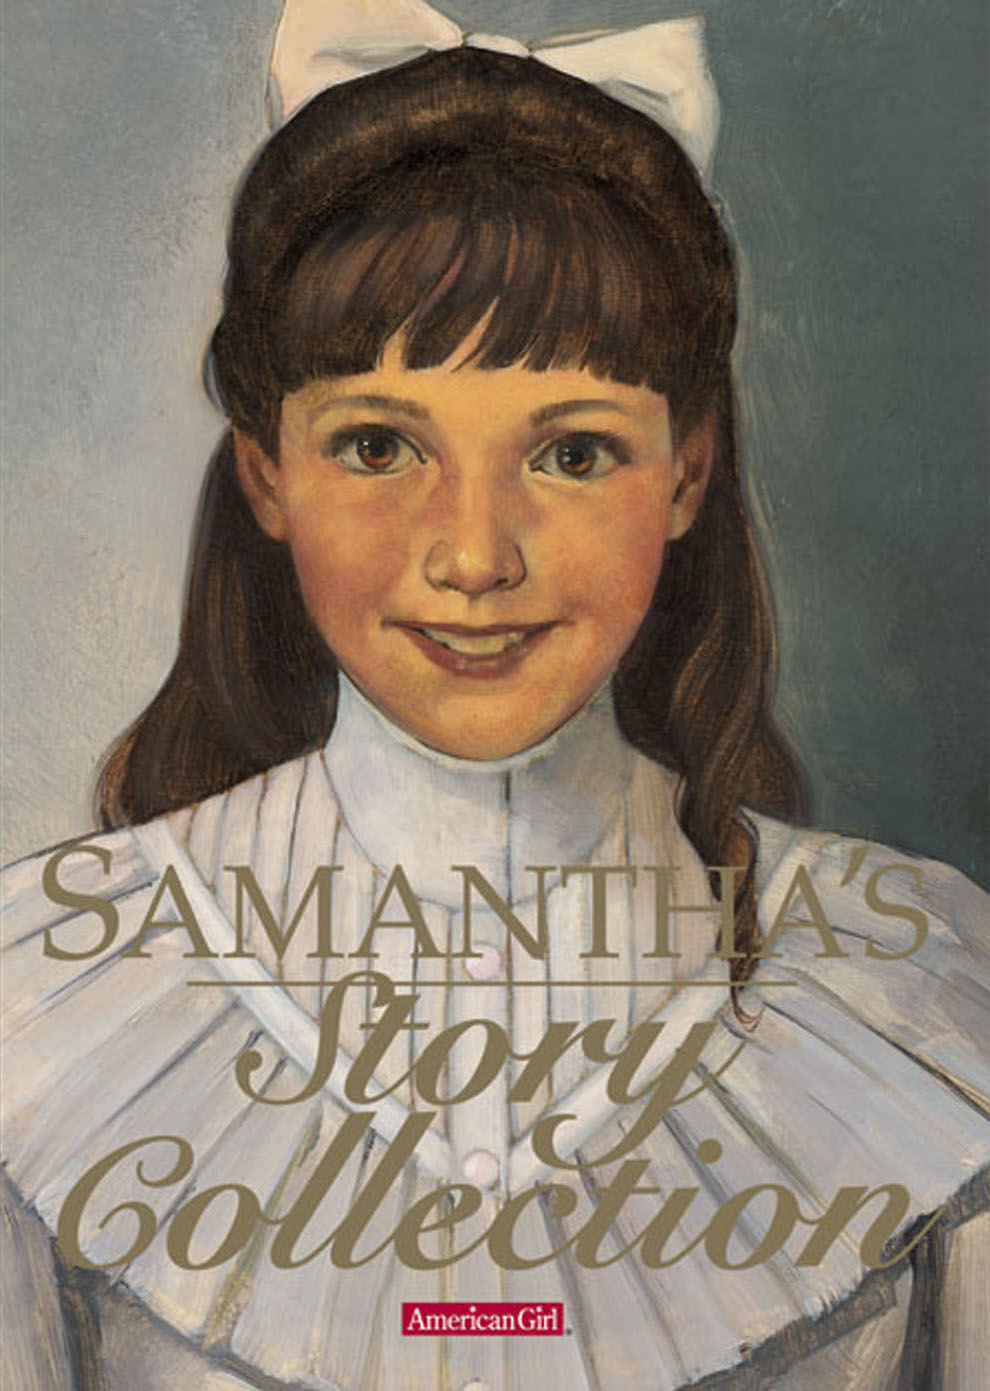 Samantha's story collection book